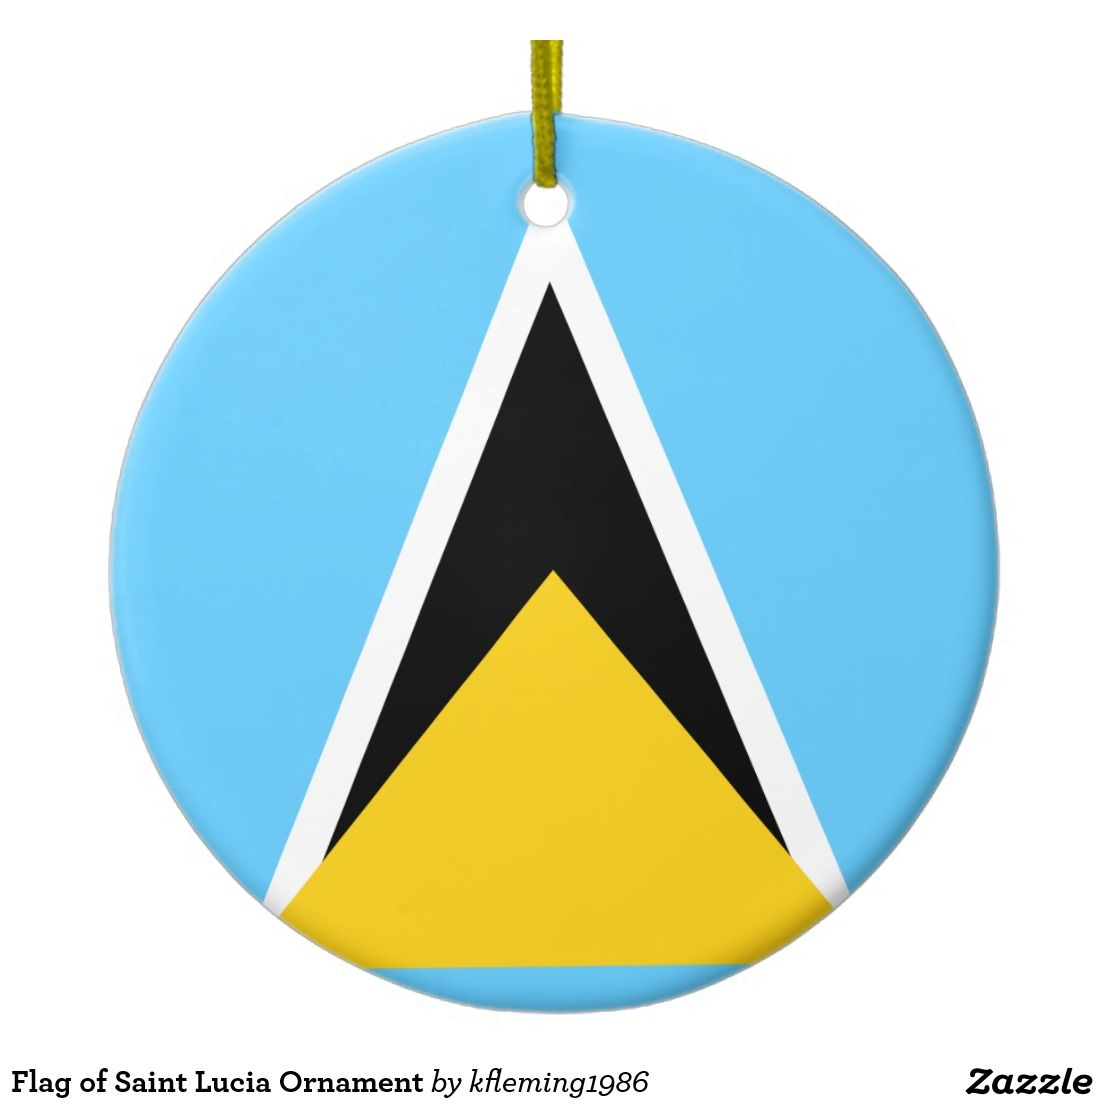 Flag of Saint Lucia Ornament